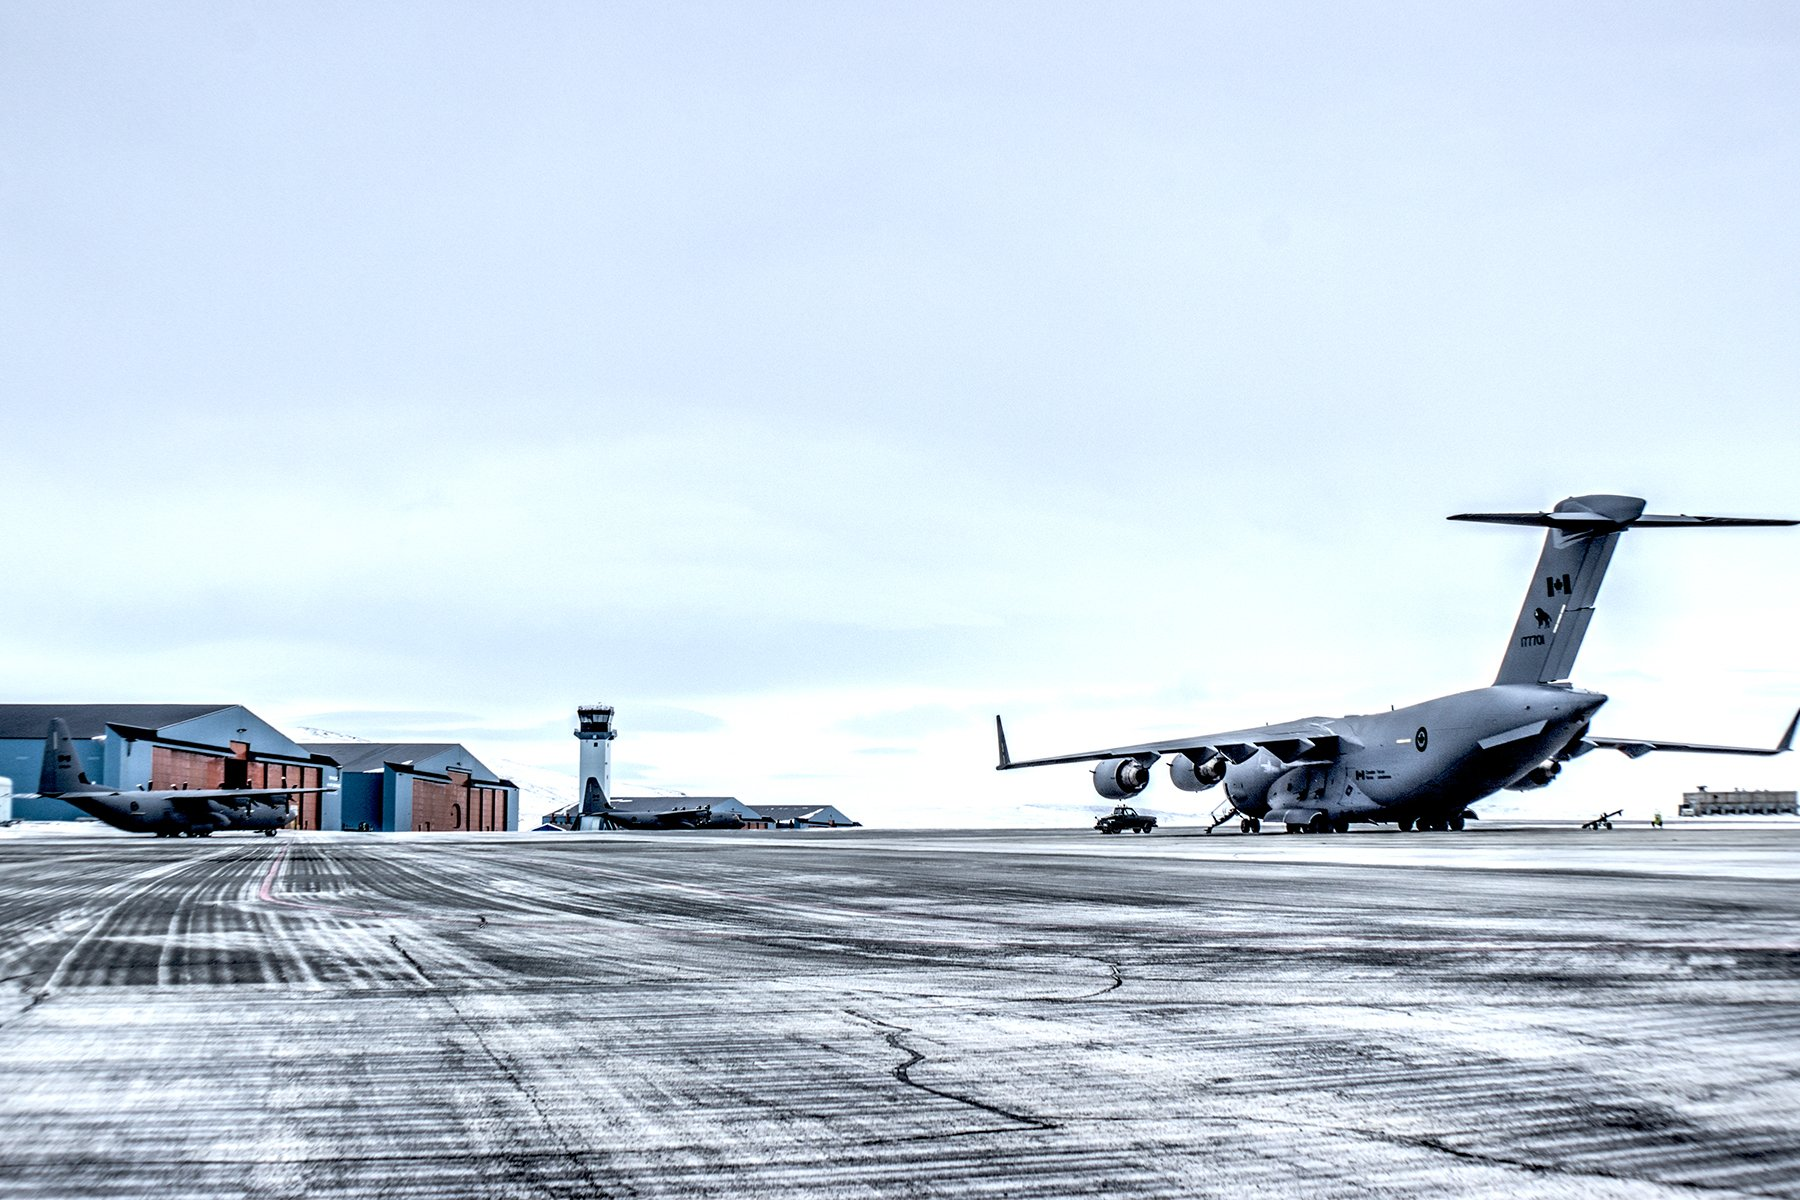 US will invest in Greenland infrastructure, says Defense Department